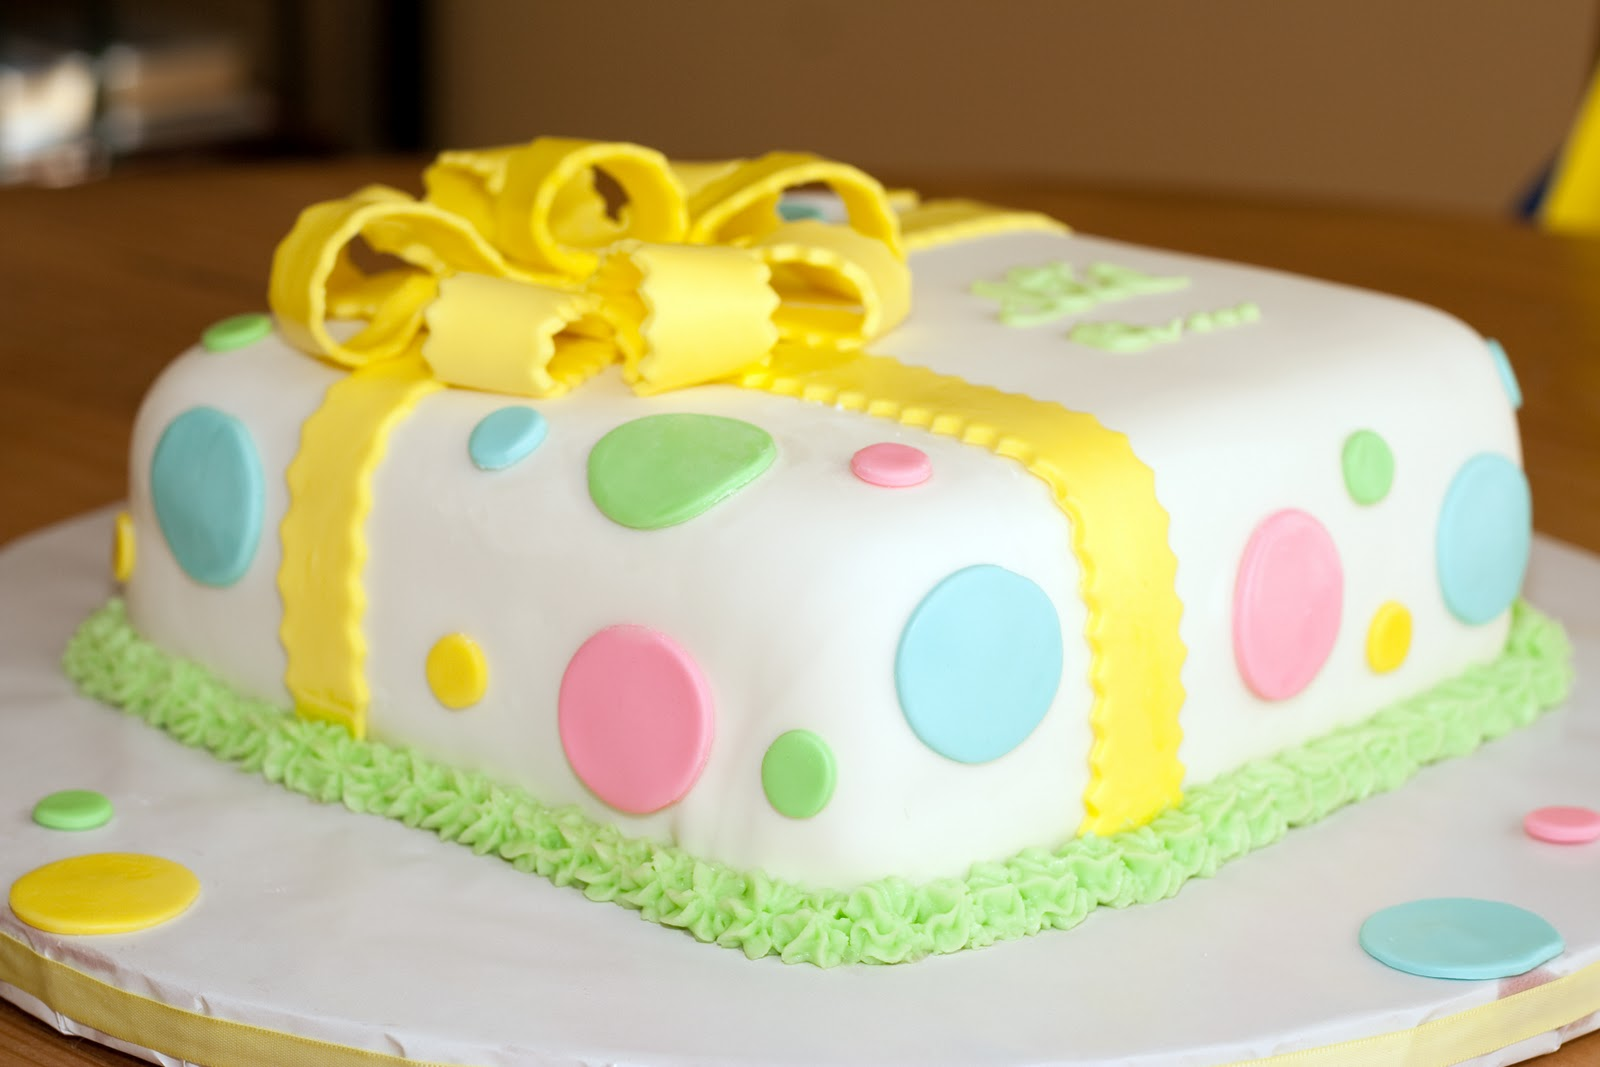 Cake Ideas For Baby Reveal Party : Cakes by Nicola: Gender Reveal Cake